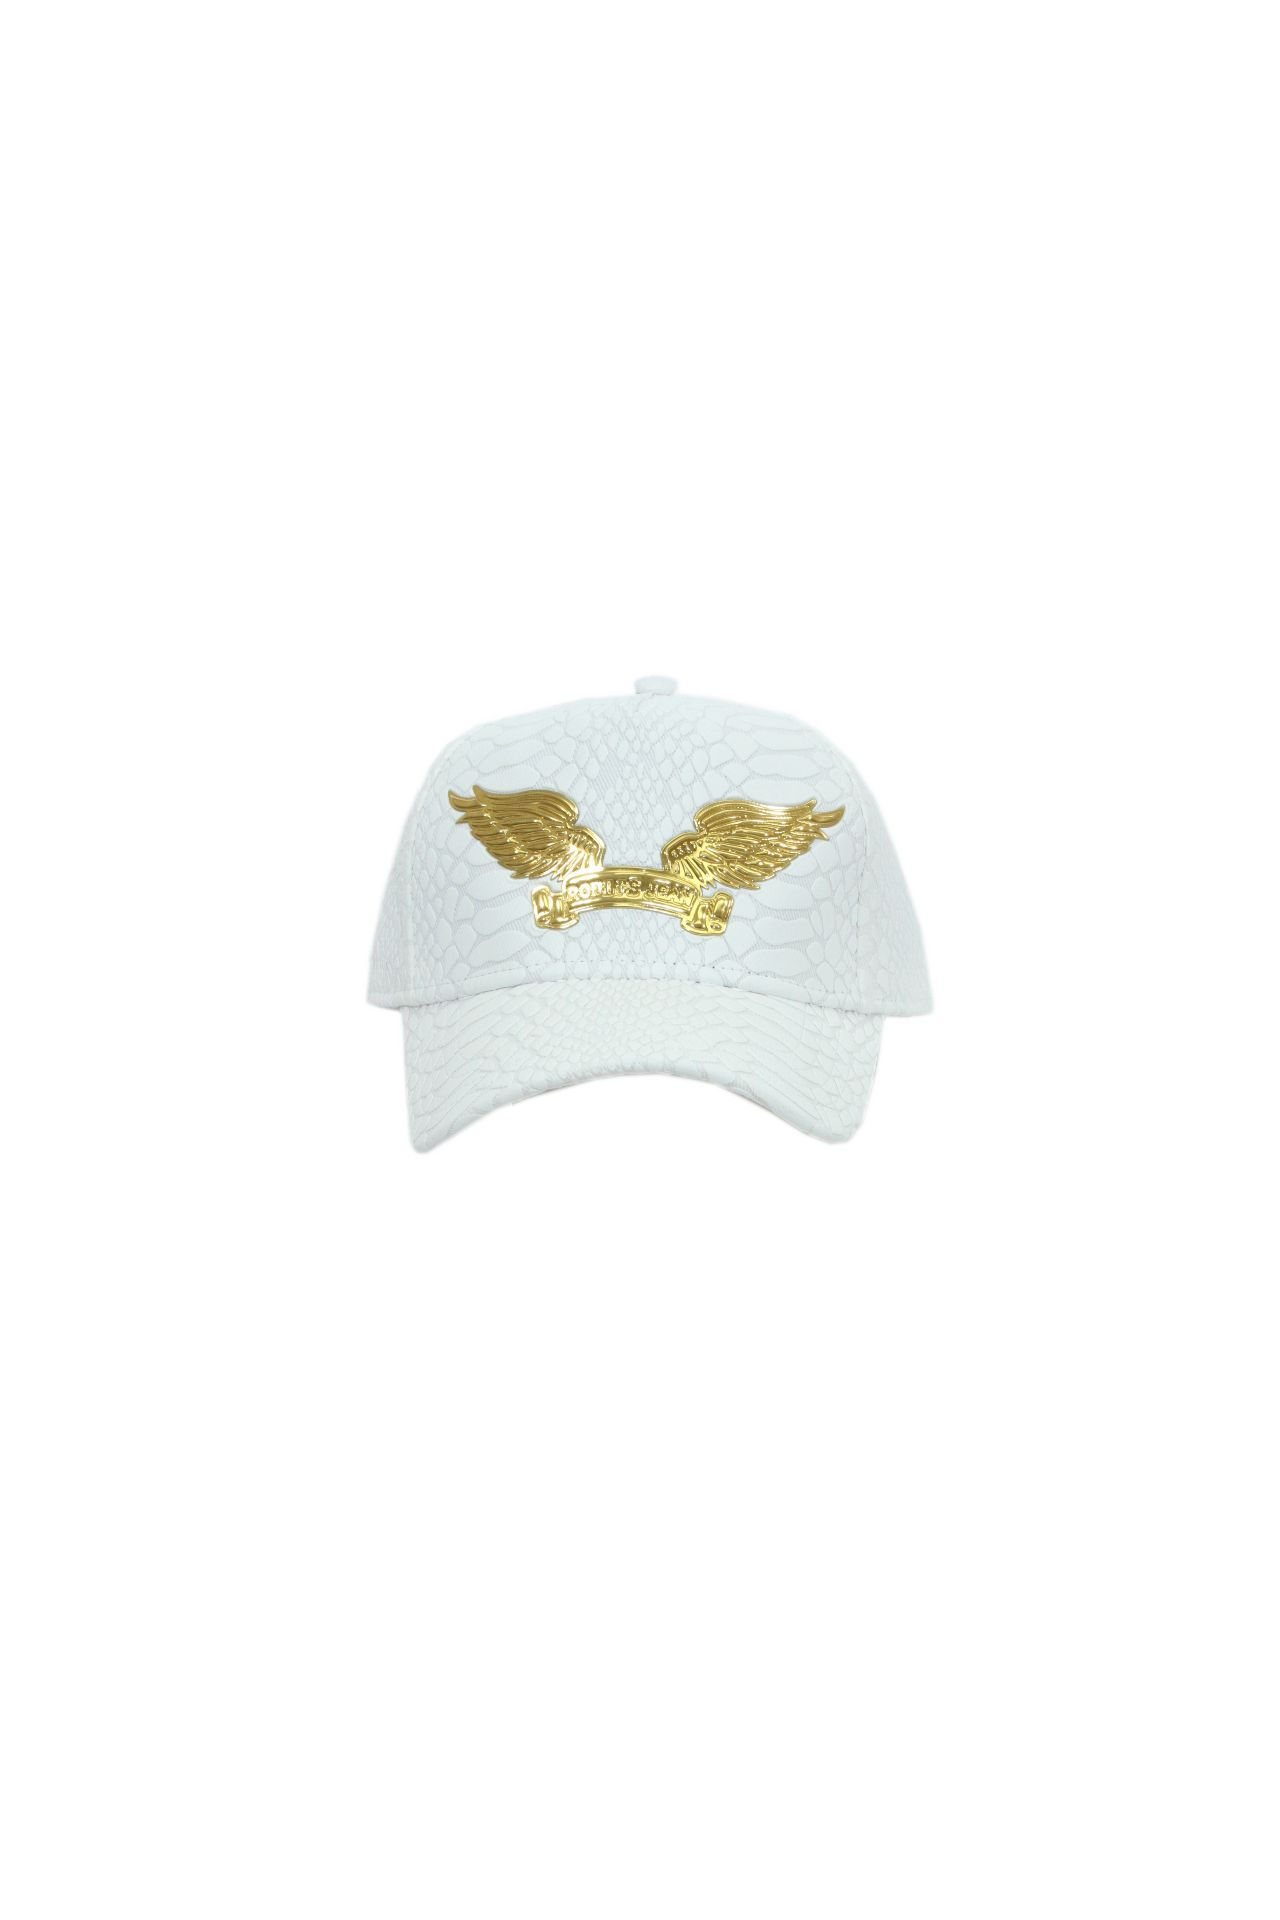 CRACKLE WHITE WITH GOLD WINGS